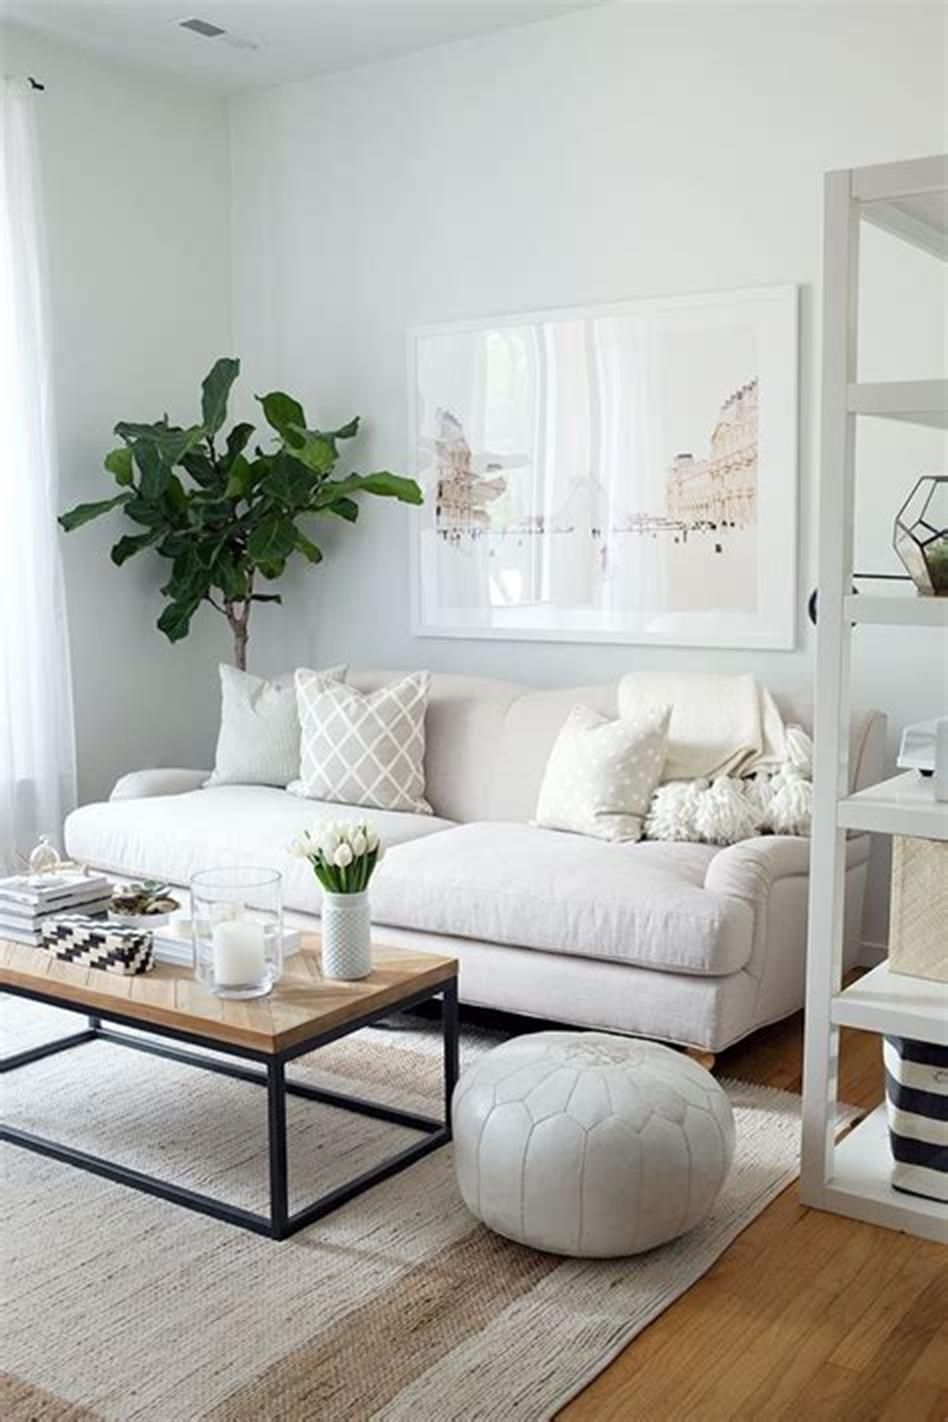 45 Simple Living Room Decorating Ideas On A Budget 2019 Room